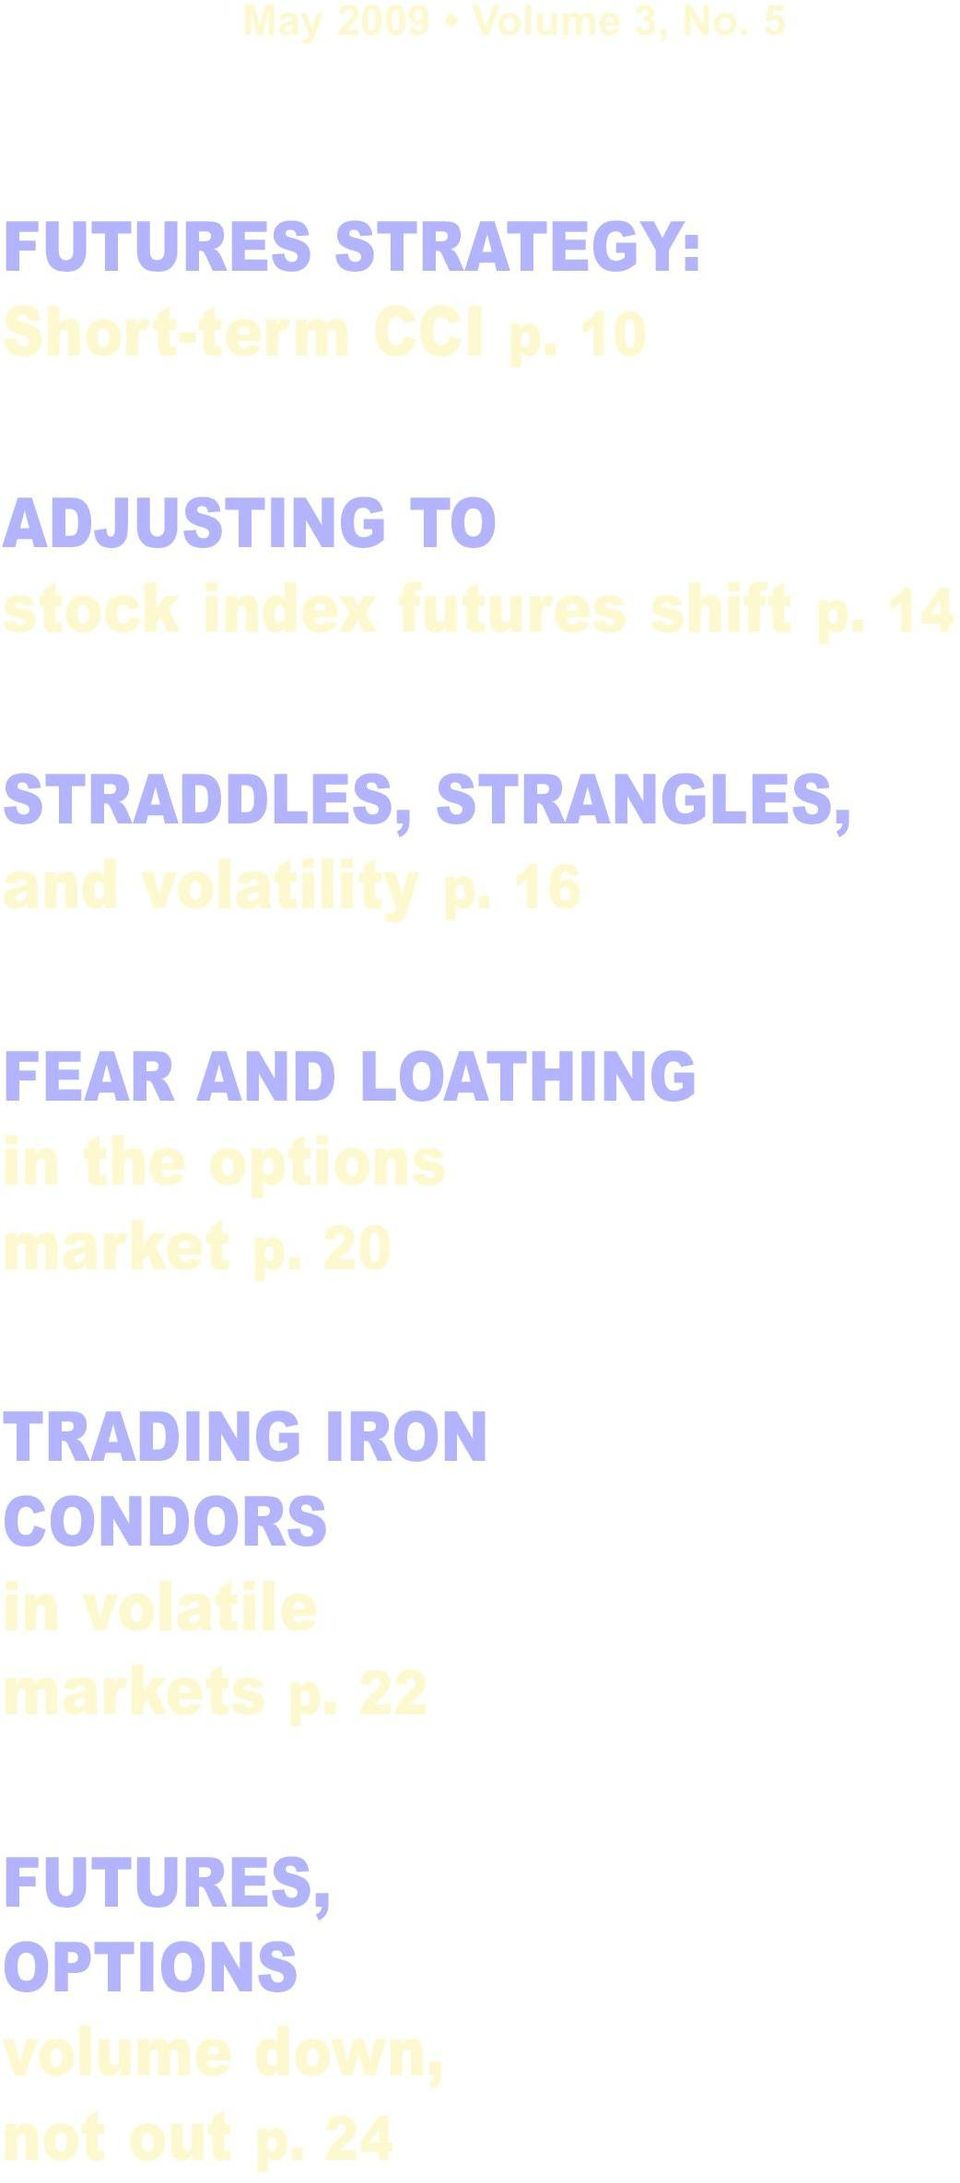 14 STRADDLES, STRANGLES, and volatility p.